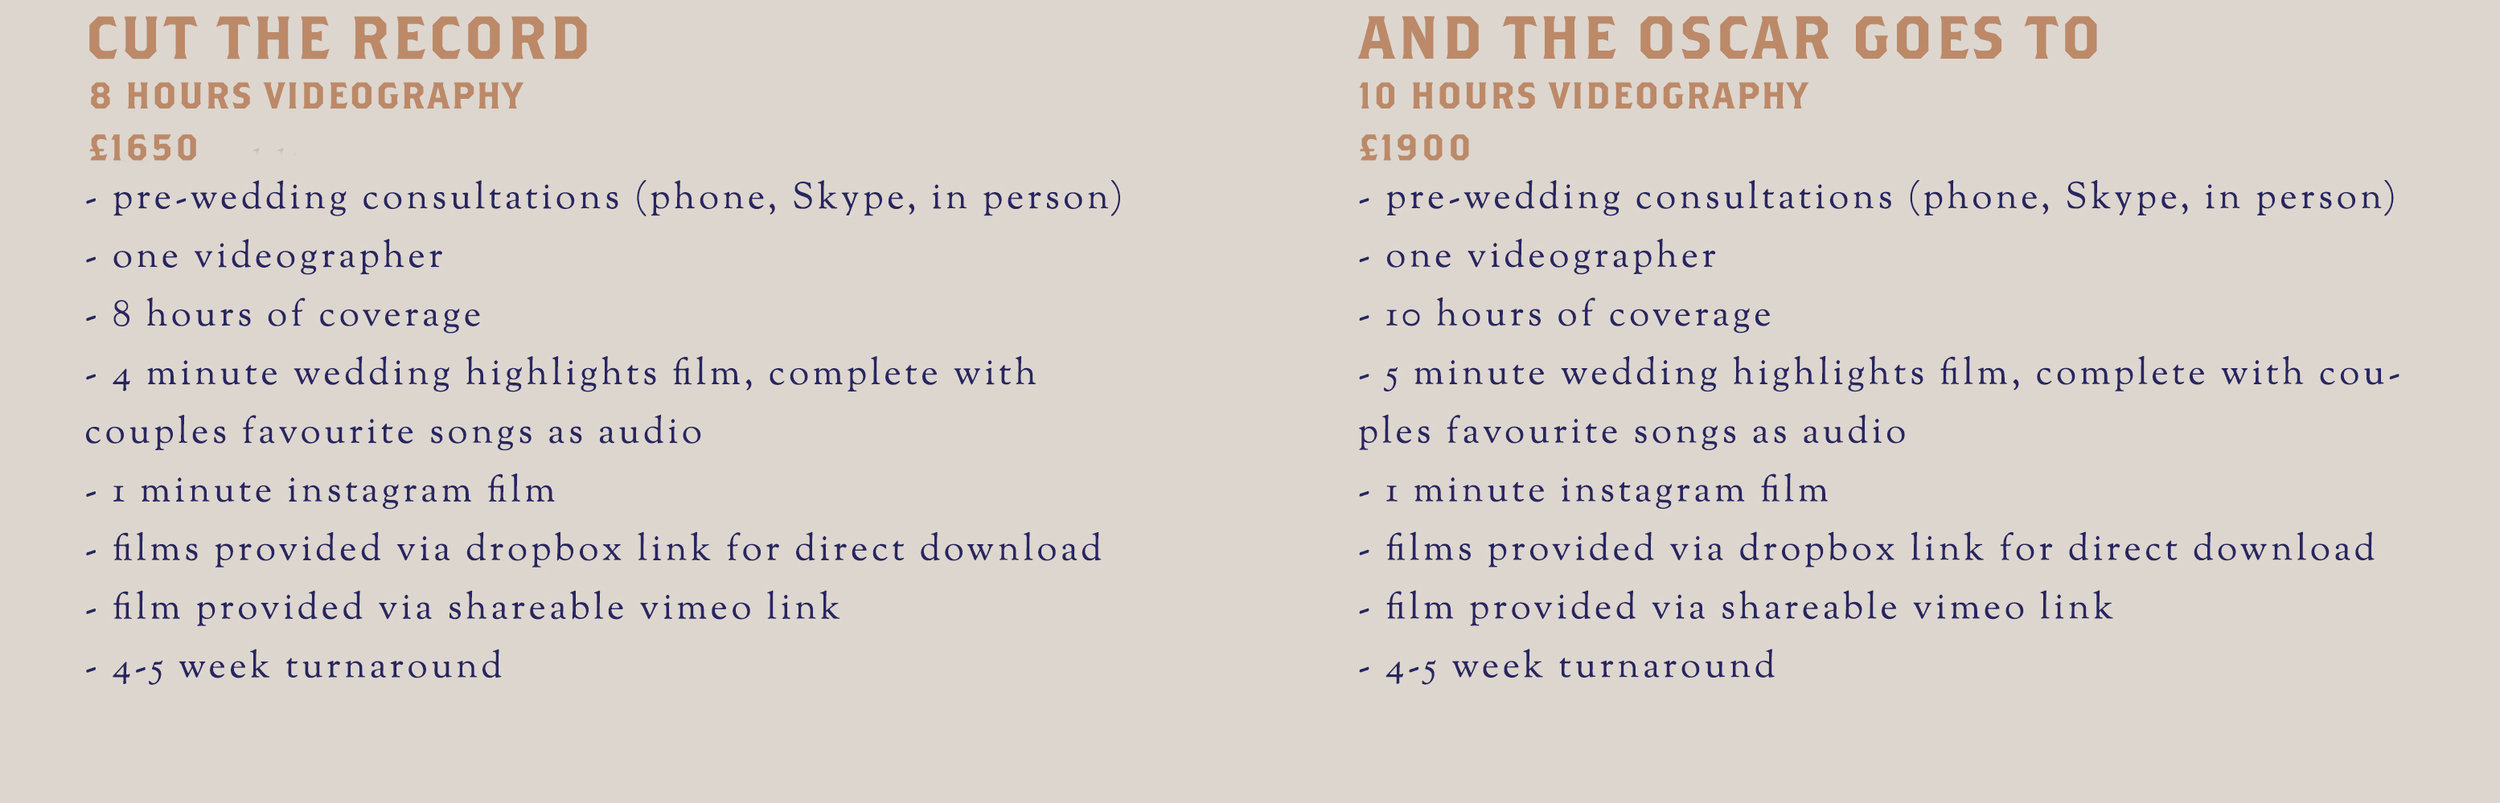 UK 2019 Videography Packages.jpg